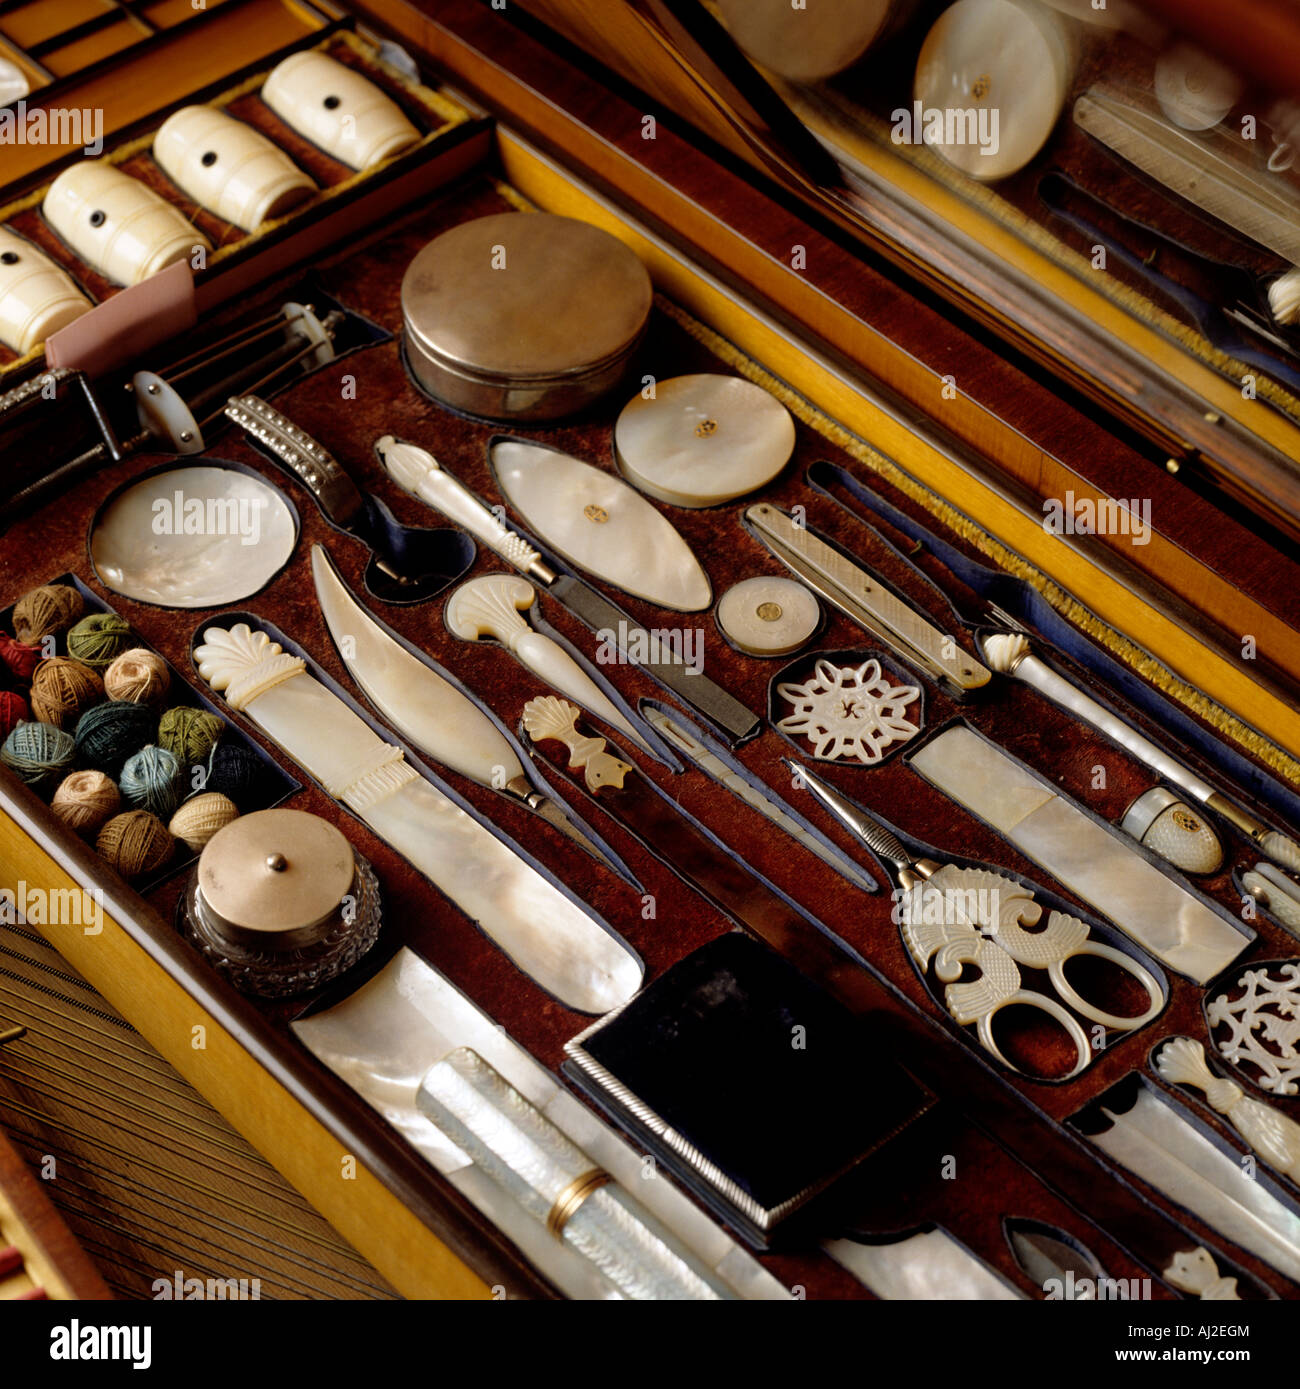 decorative display of antique pearl sewing equipment - Stock Image